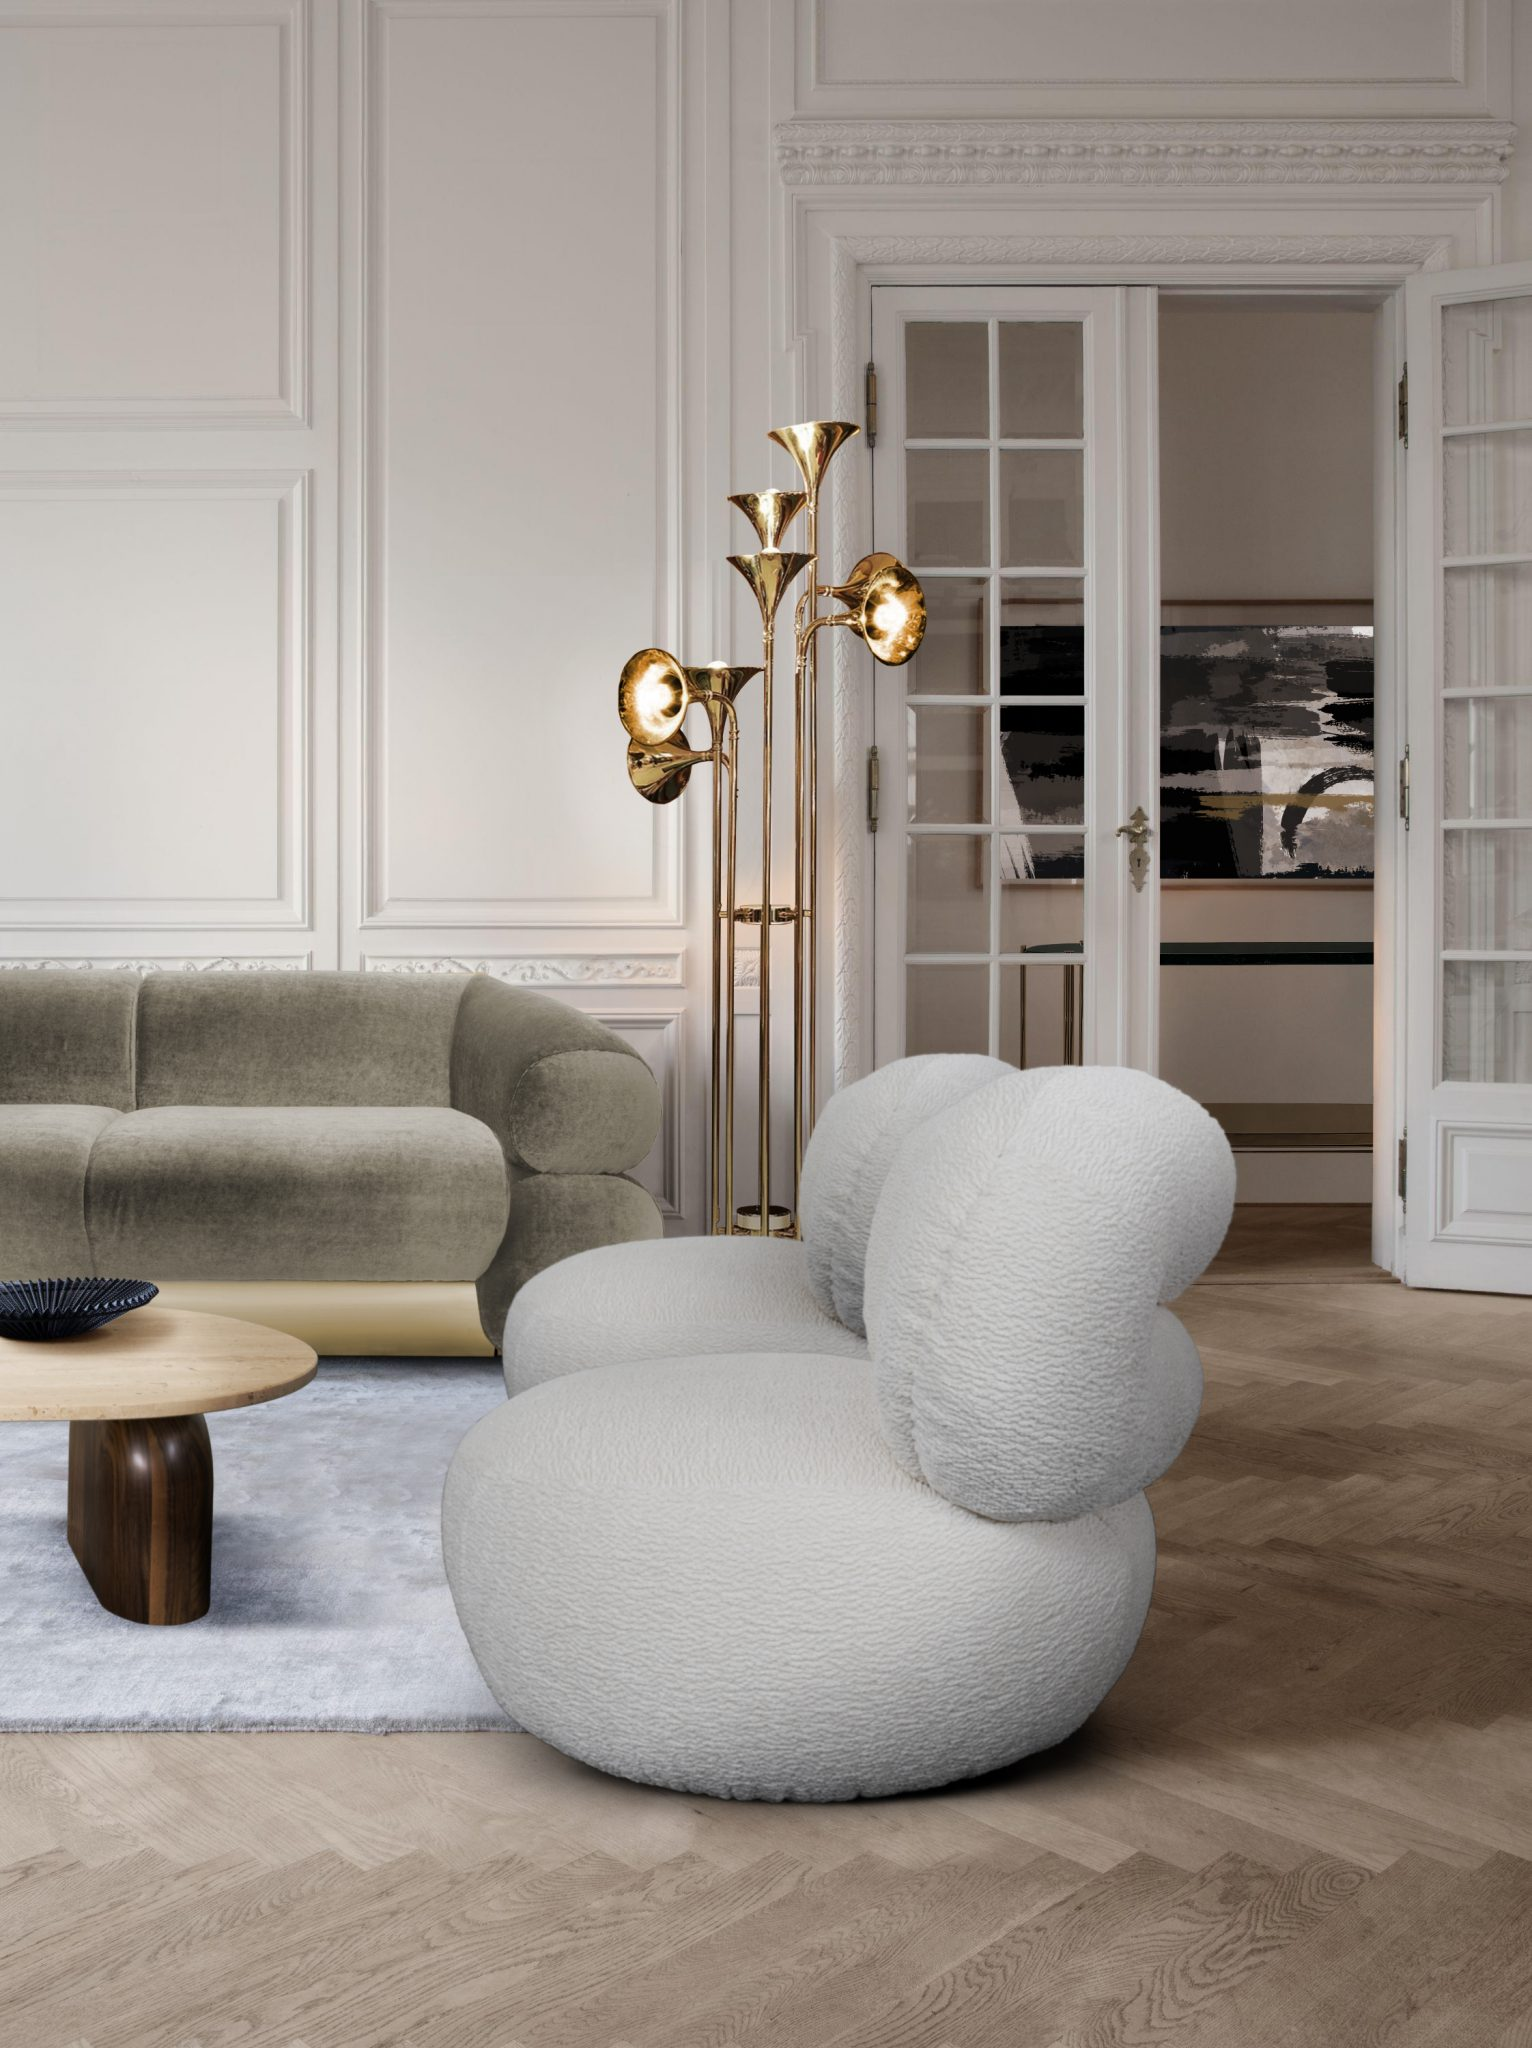 MAKE YOUR MID-CENTURY DECOR STAND OUT WITH BOTTI FLOOR LAMP